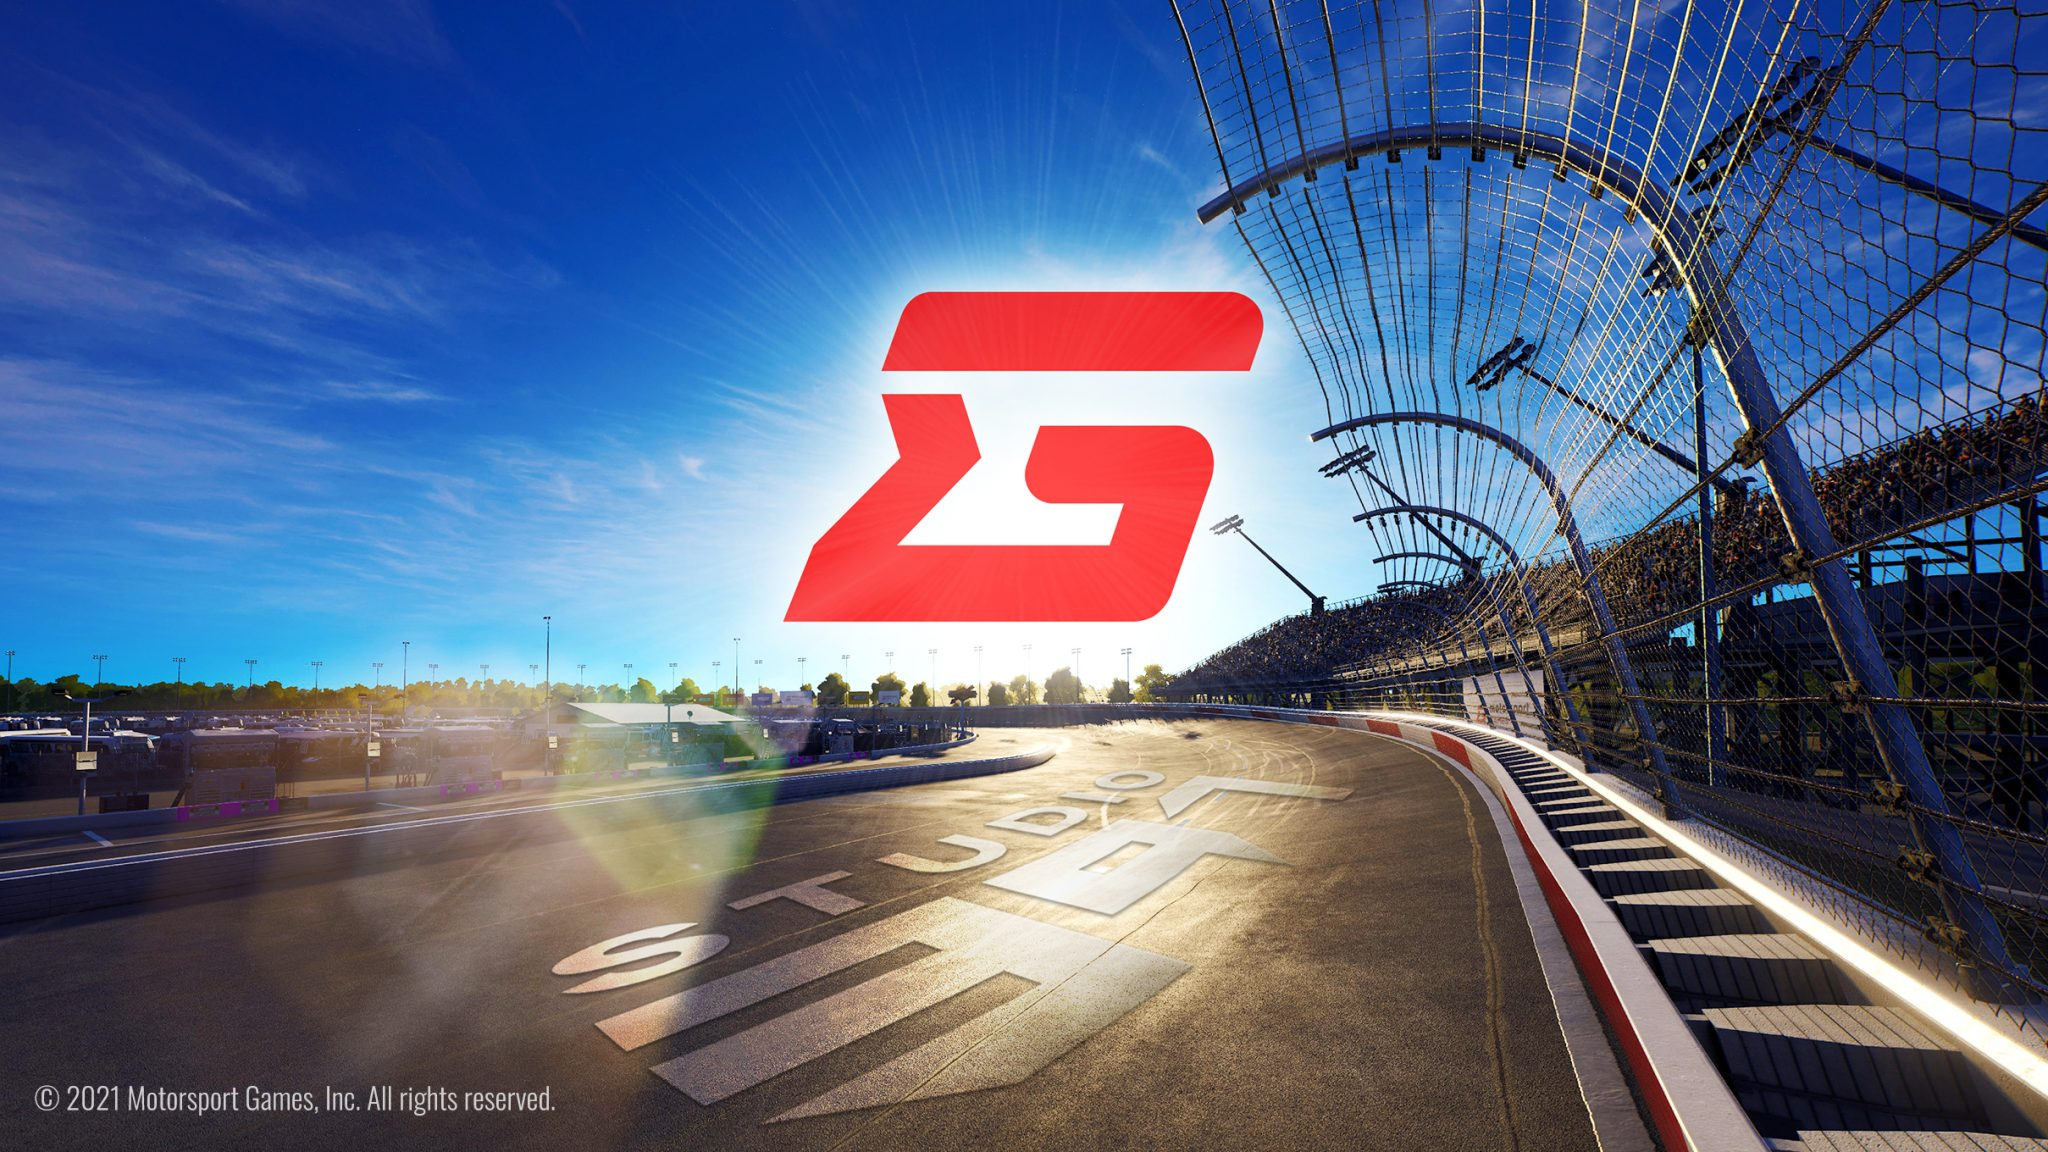 MOTORSPORT GAMES COMPLETES ACQUISITION OF STUDIO 397